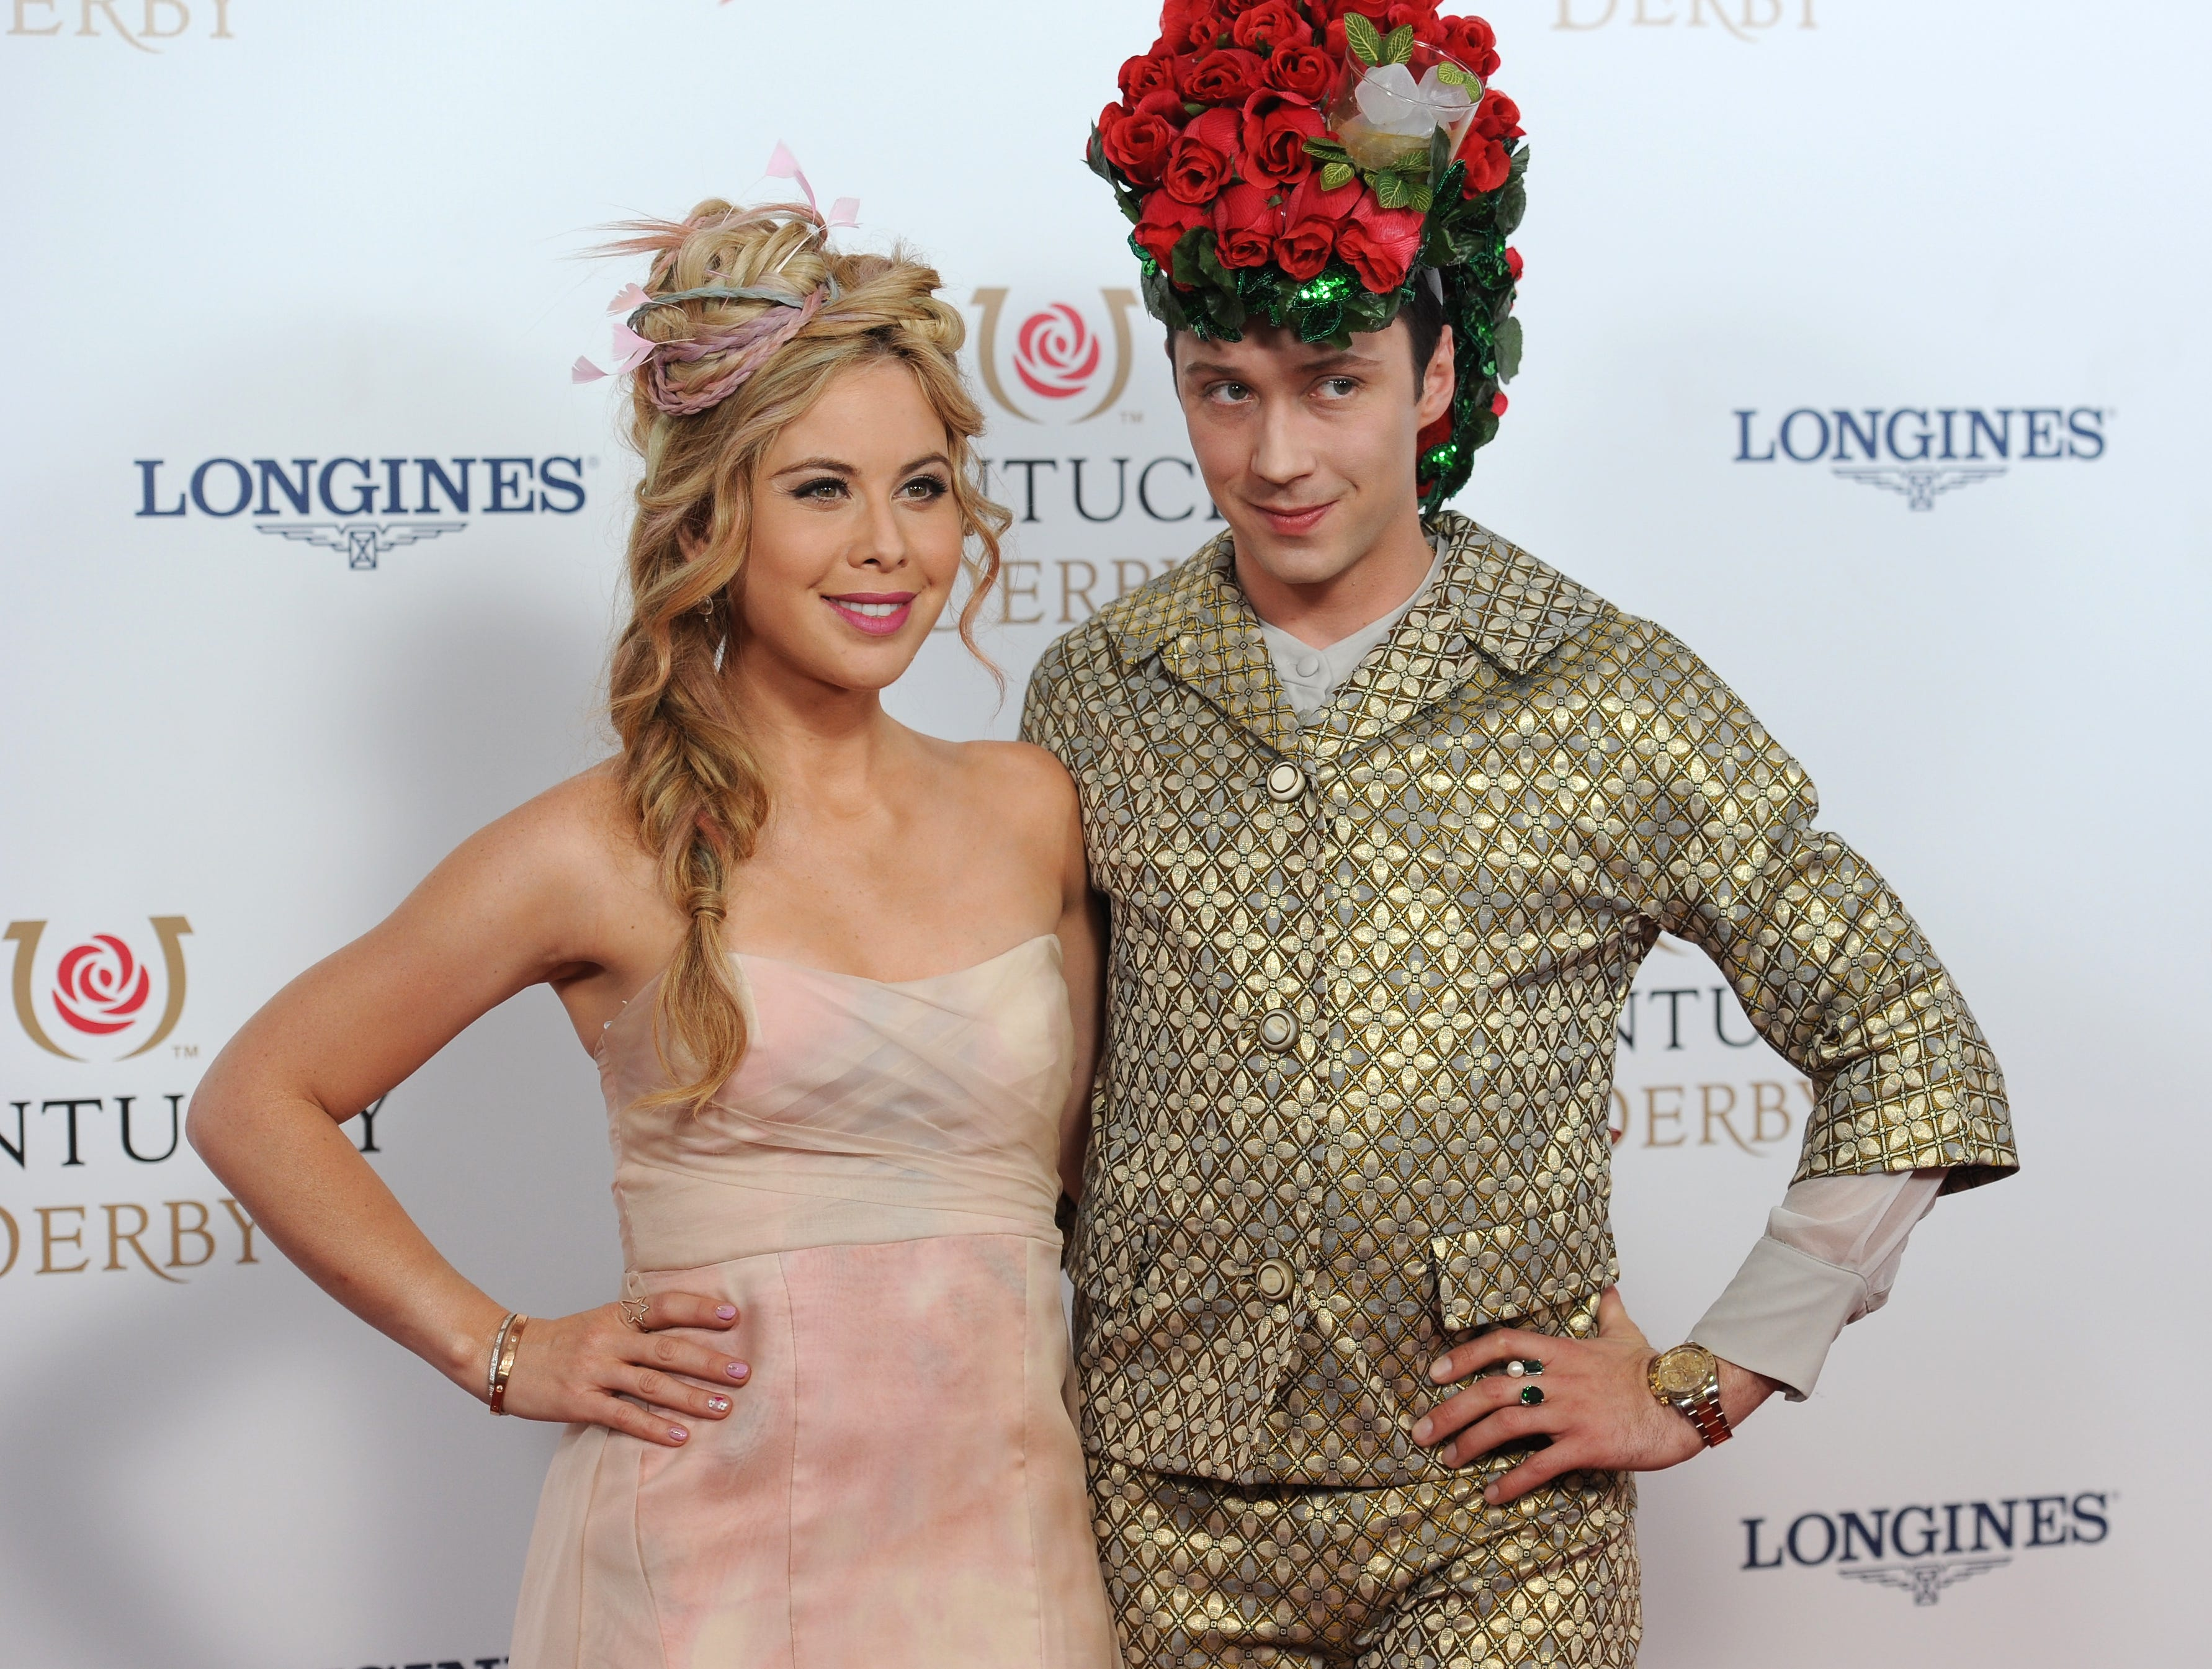 Tara Lipinski (left) and Johnny Wier arrive on the red carpet at the 2015 Kentucky Derby on Saturday, May 2, 2015 at Churchill Downs in Louisville, Ky.